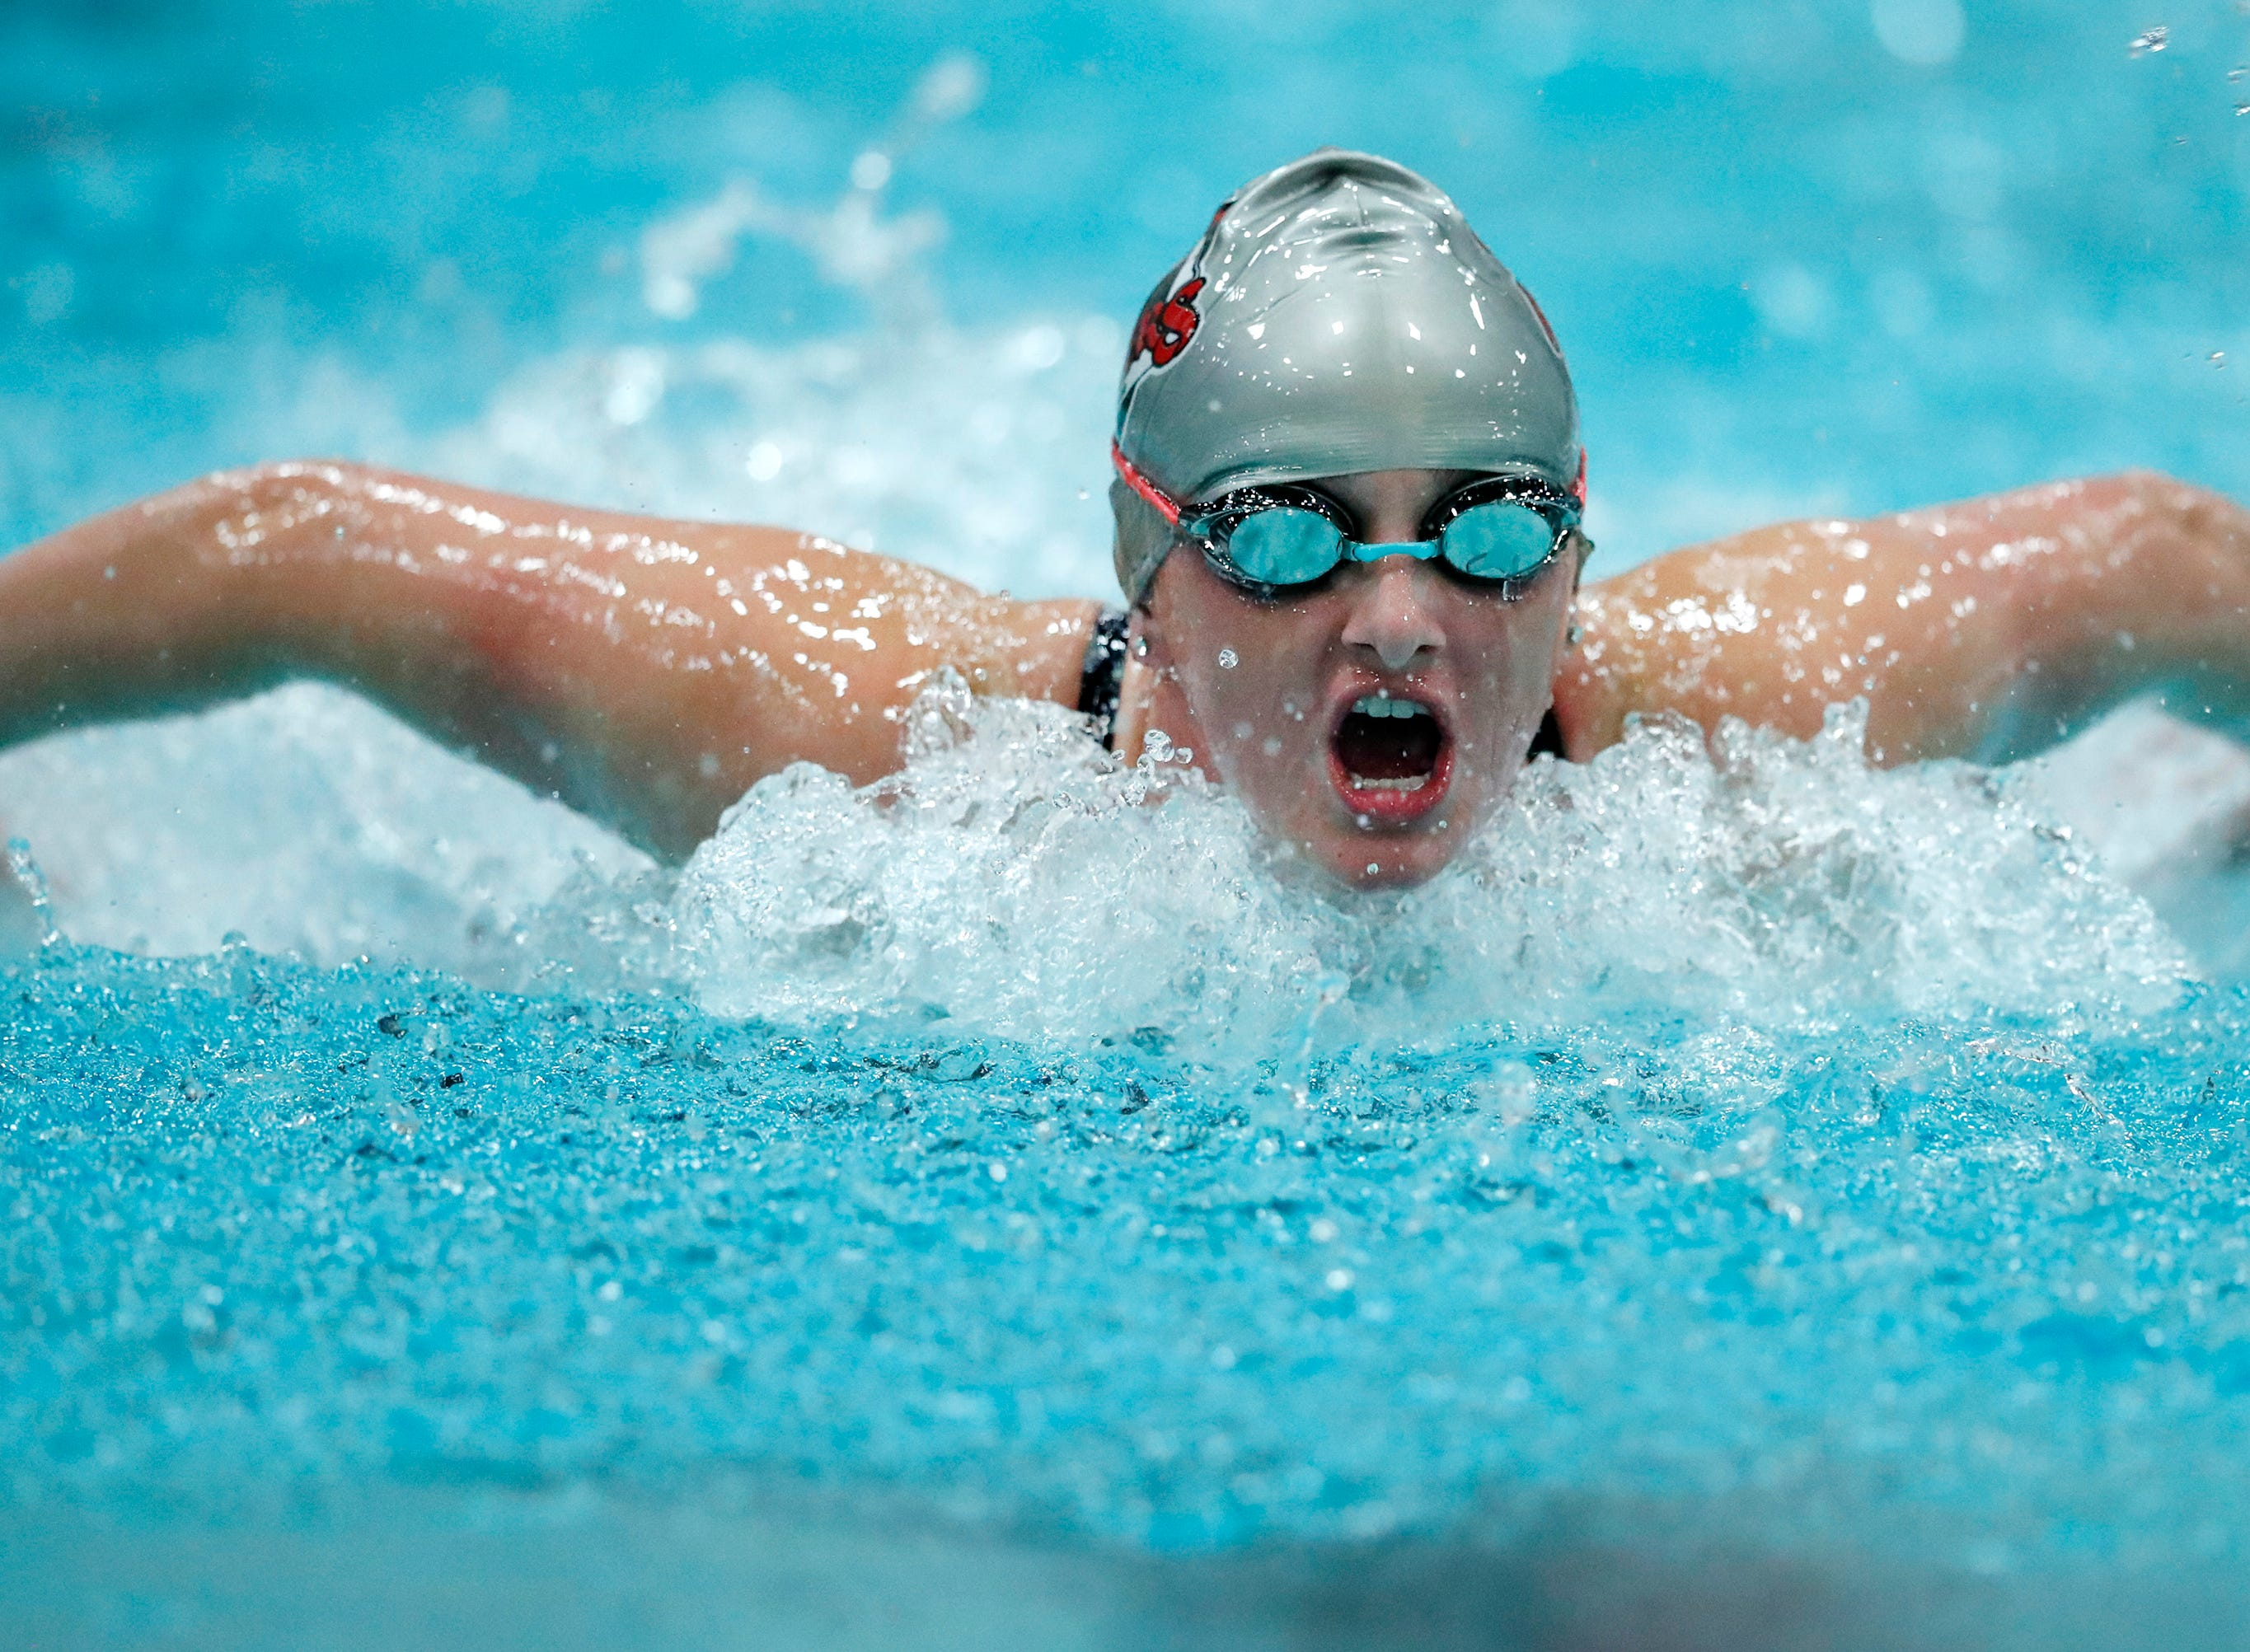 Medford's Aubrey Buskerud races in the 200 yard individual medley during the WIAA Division 2 State Swimming and Diving meet Friday, Nov. 9, 2018, at the UW Natatorium in Madison, Wis.Danny Damiani/USA TODAY NETWORK-Wisconsin